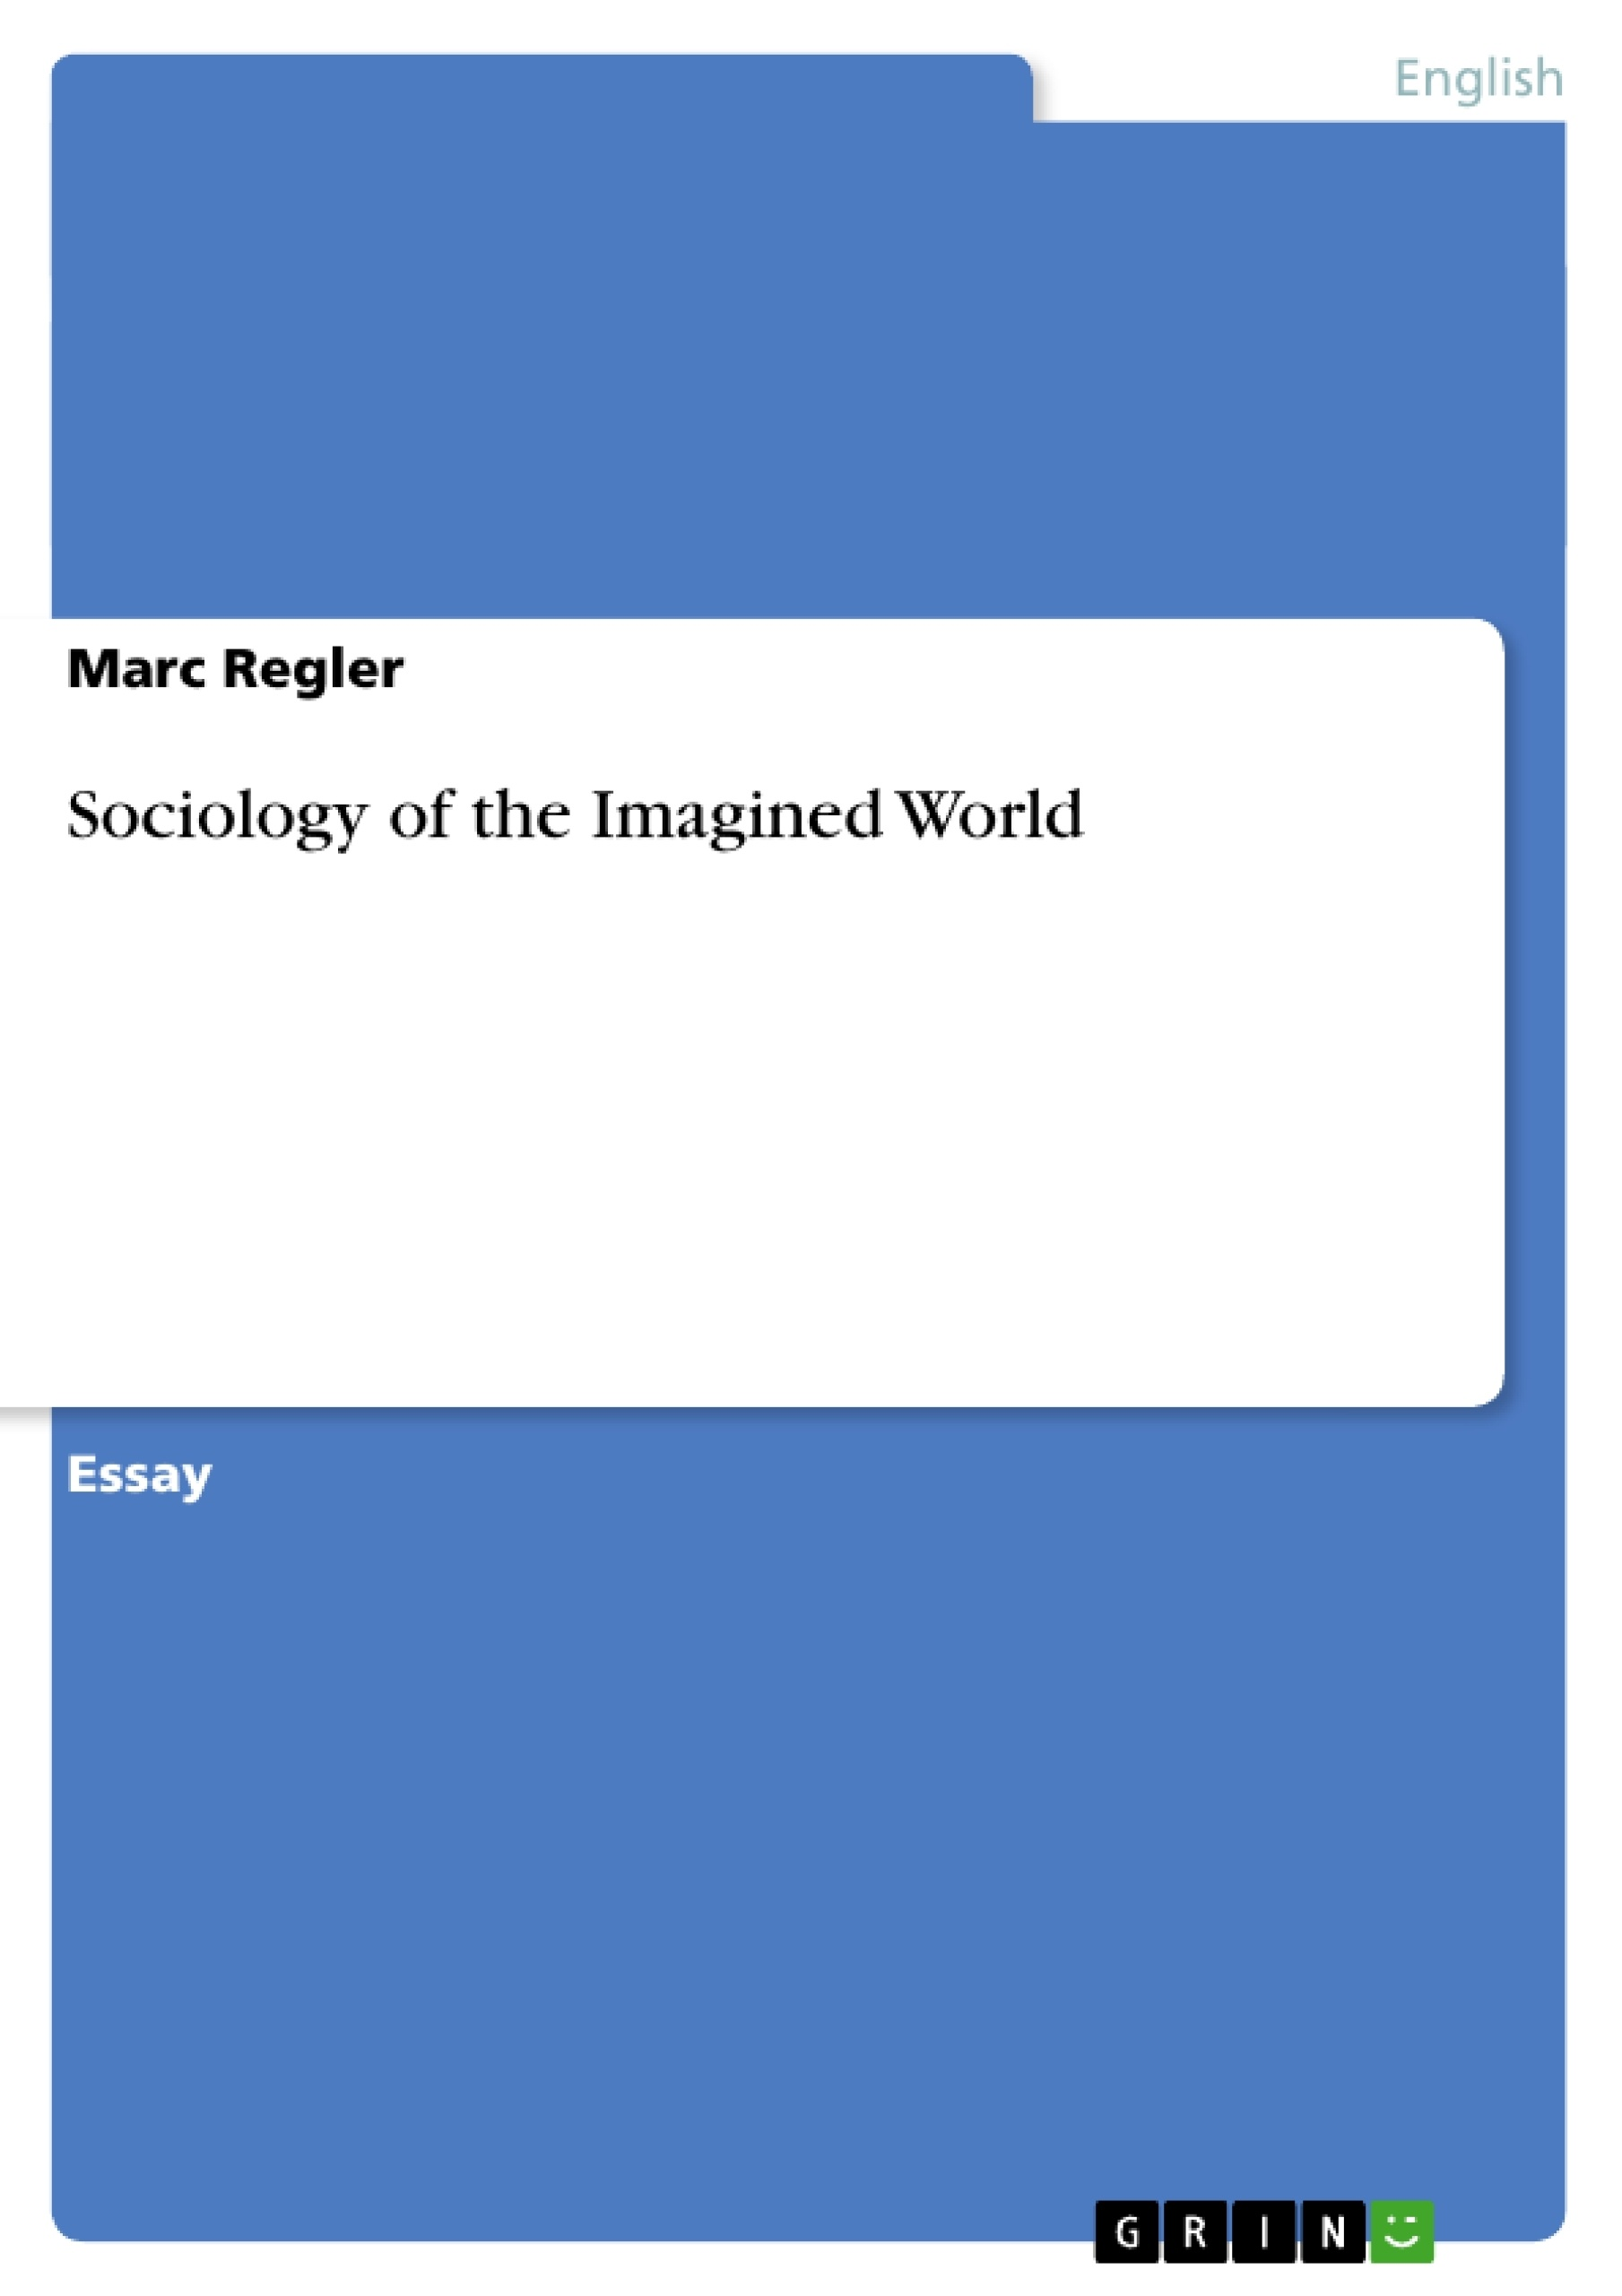 Title: Sociology of the Imagined World